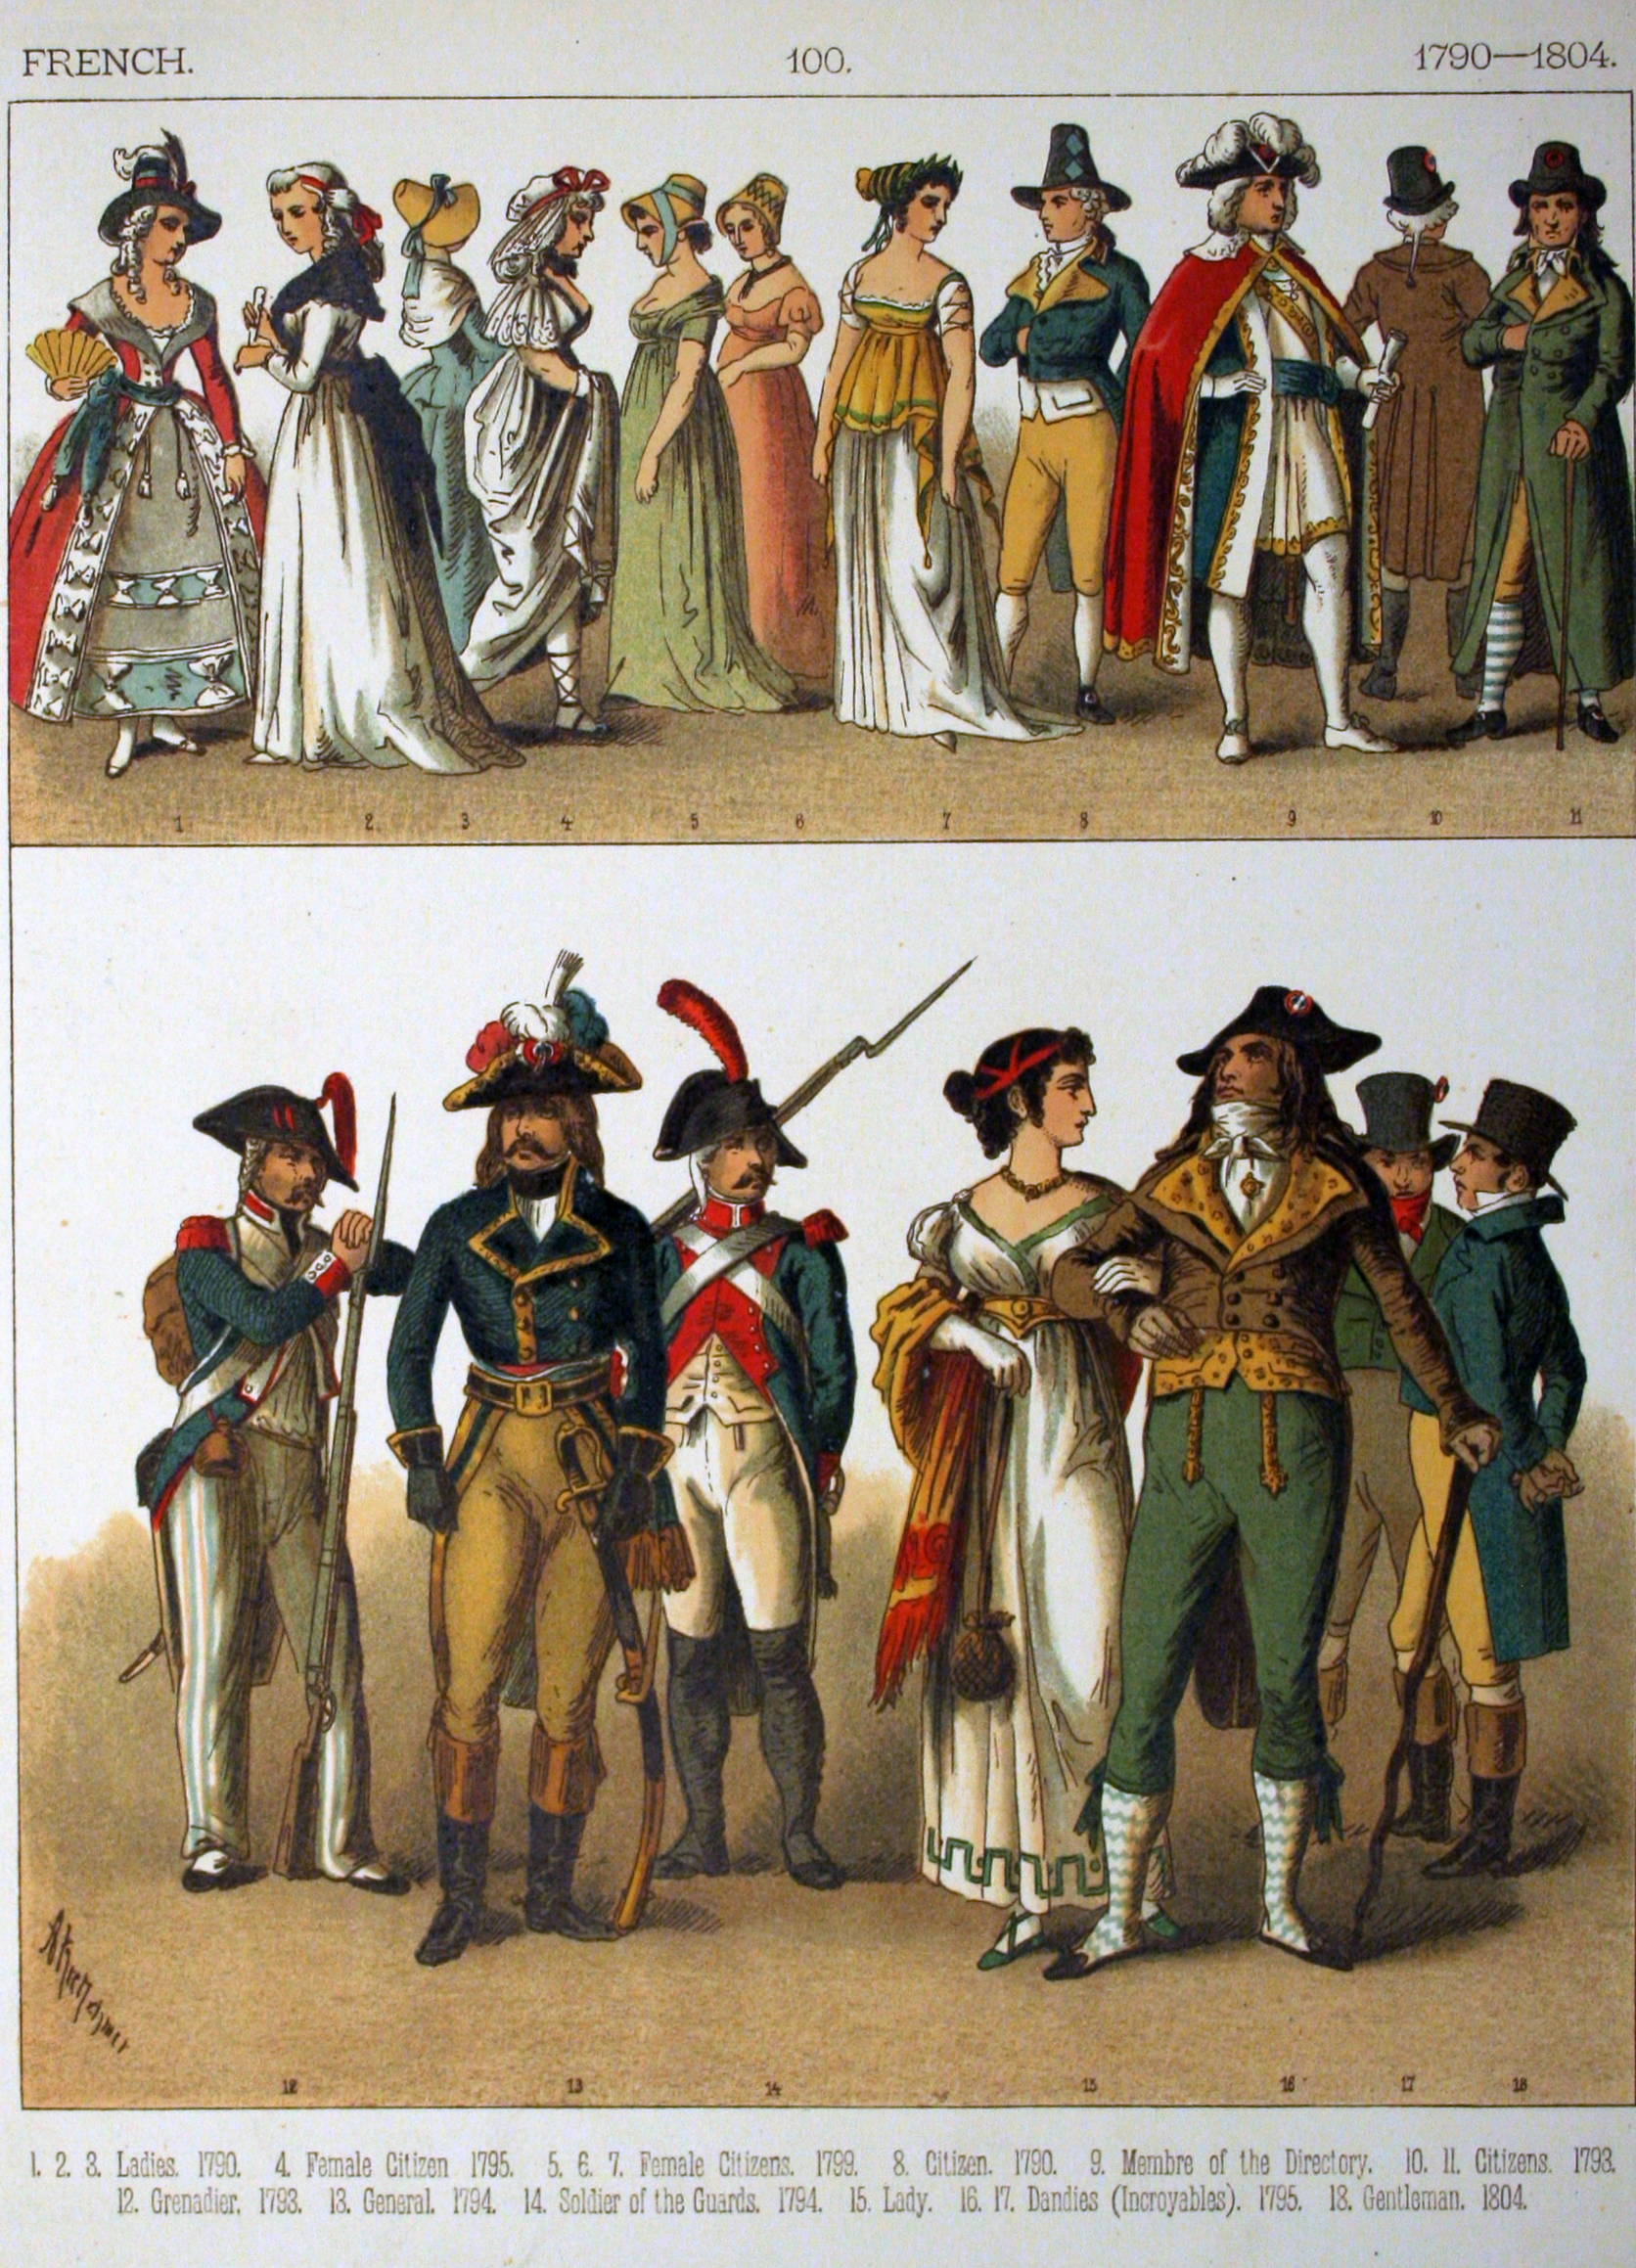 File:1790-1804, French. - 100 - Costumes of All Nations (